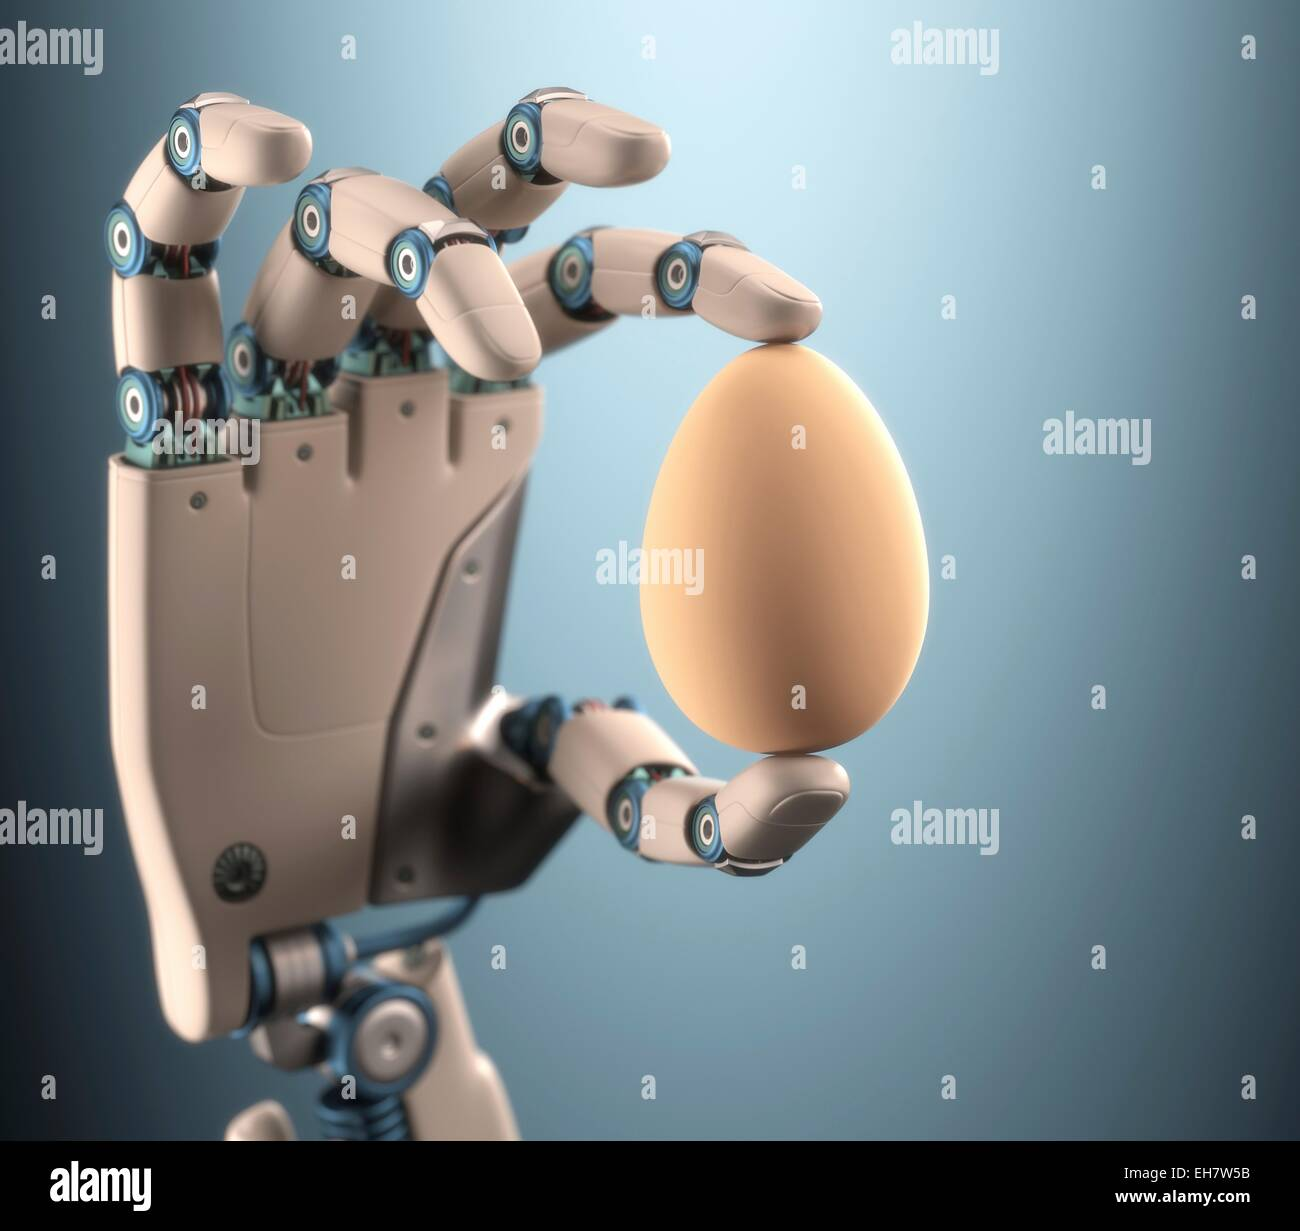 Robotic Hand Holding Egg Illustration Stock Photo 79464039 Alamy